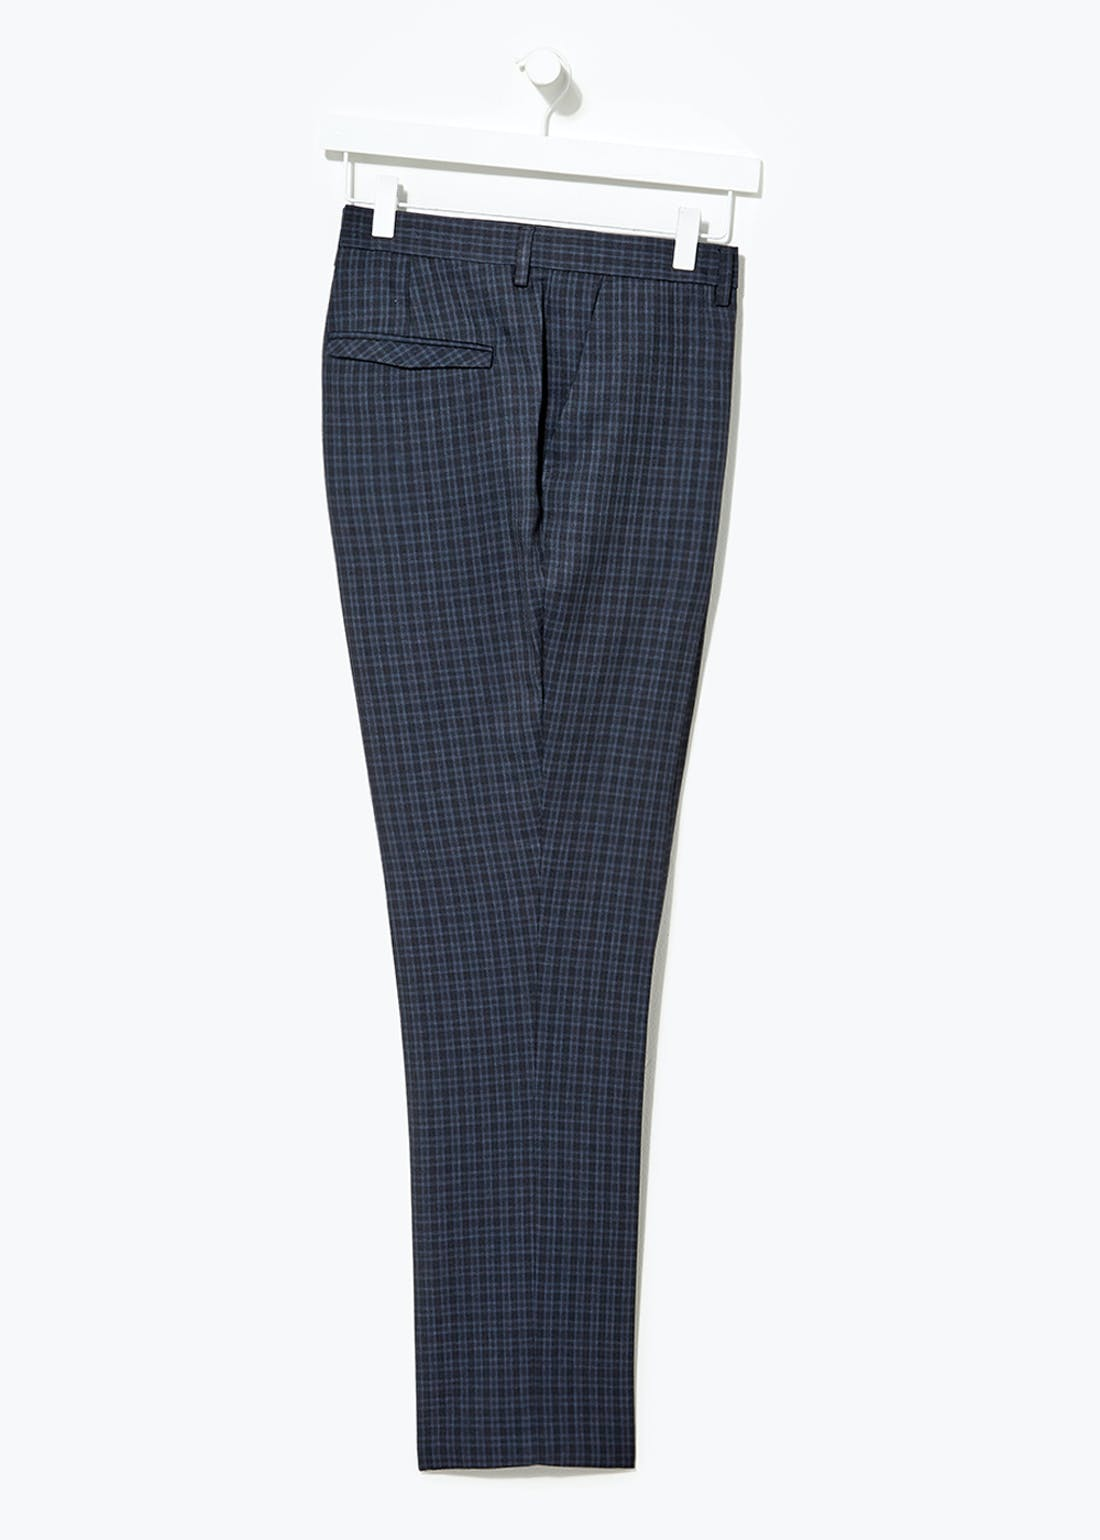 Taylor & Wright Picton Skinny Fit Trousers